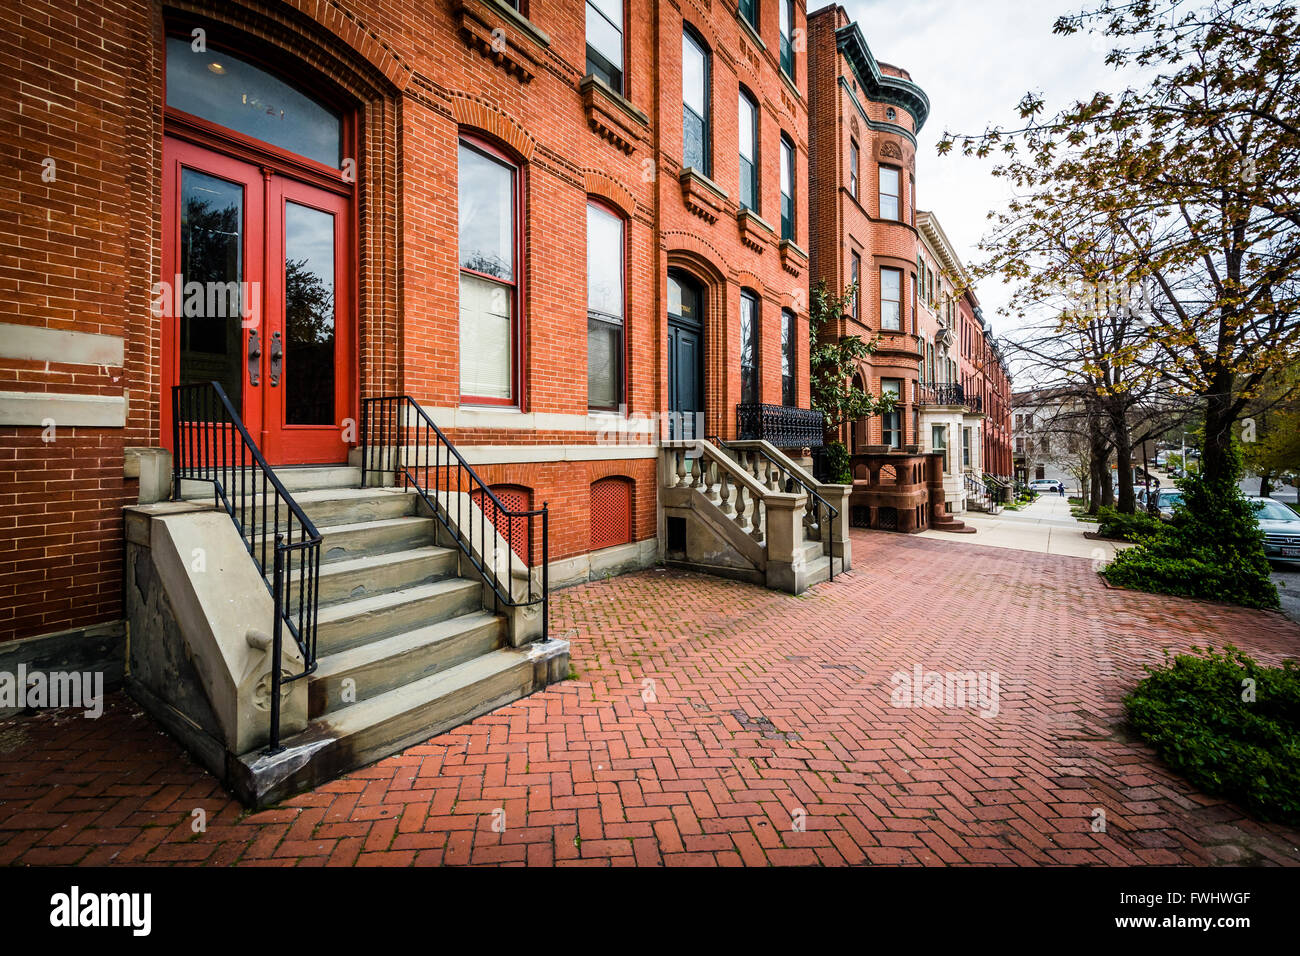 Brick sidewalk and row houses in Bolton Hill, Baltimore, Maryland. - Stock Image